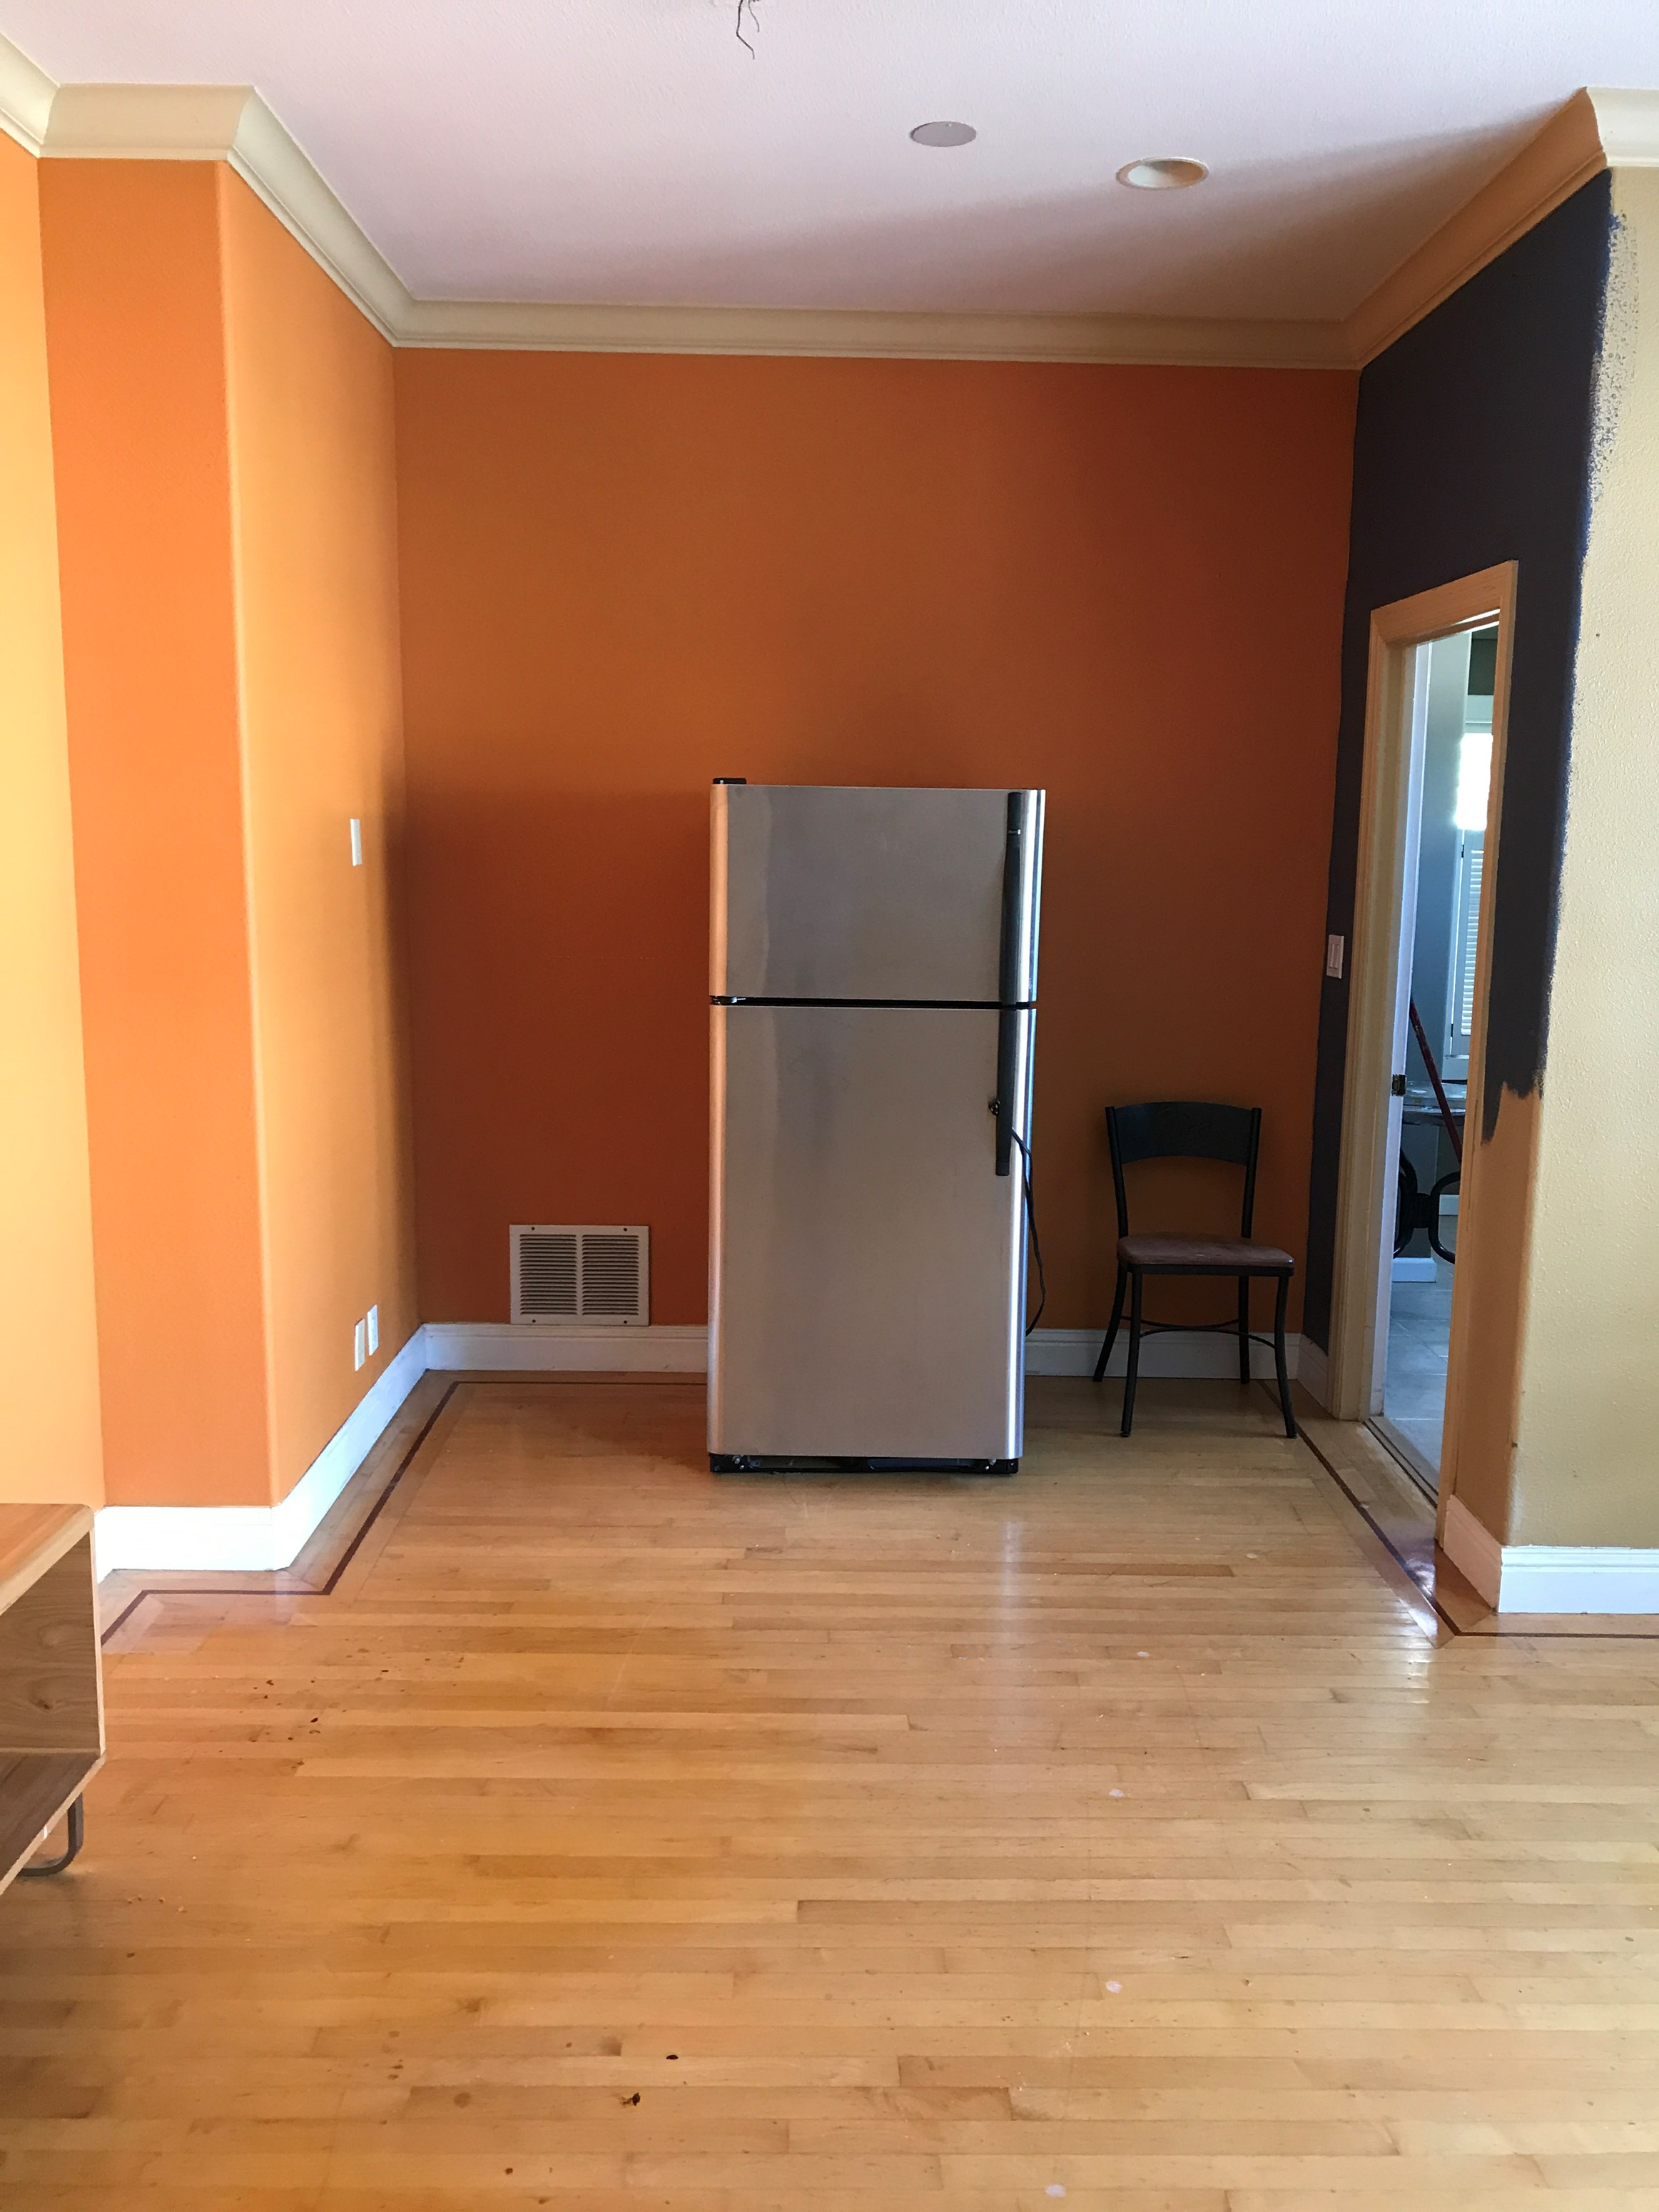 1br apt for rent close to san jose state university, down town